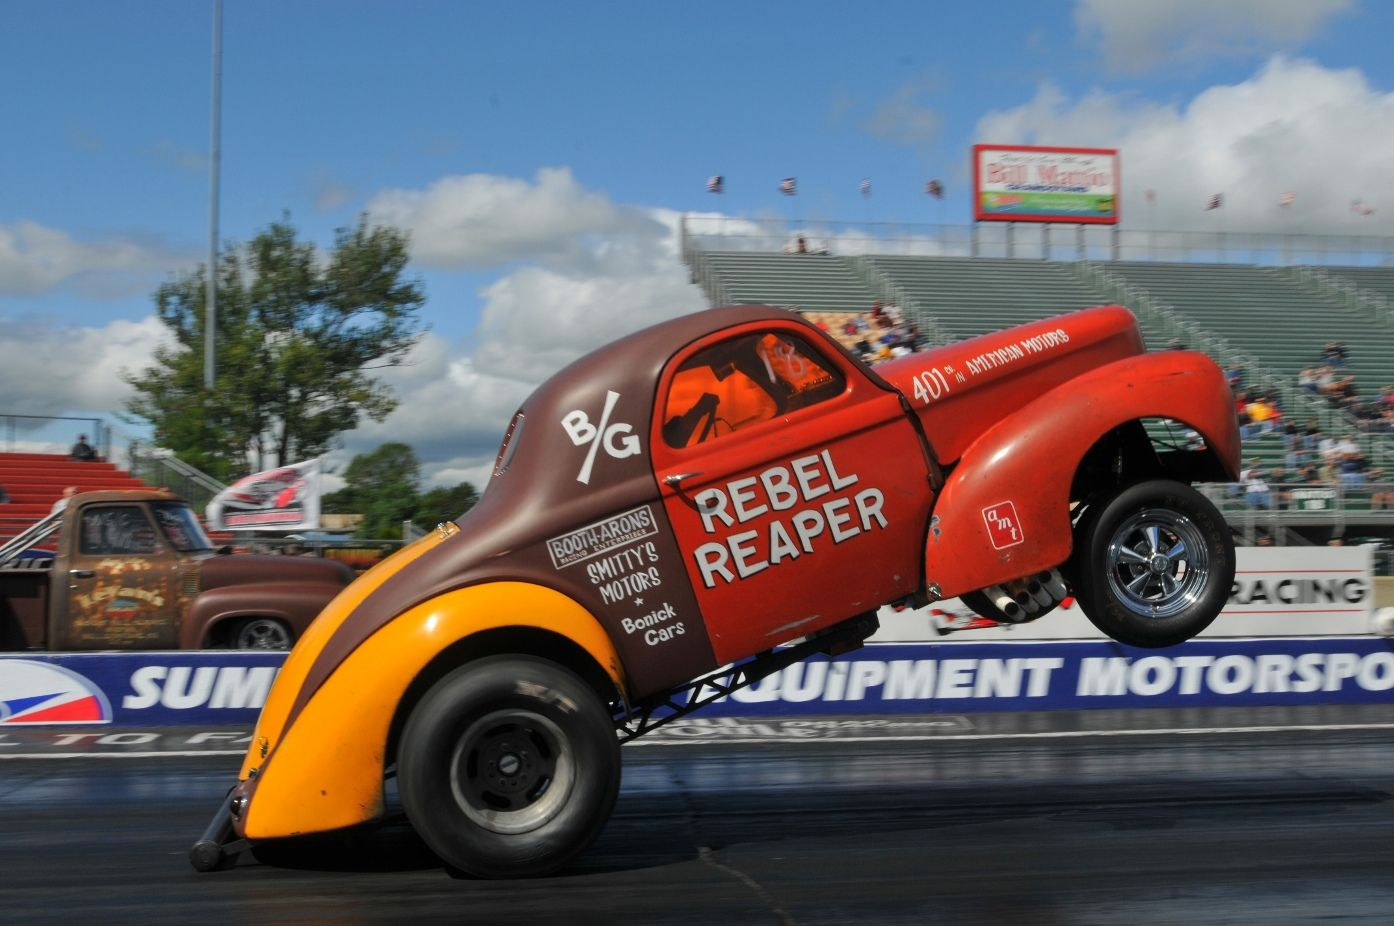 Gassers Drag Racing News Daily Goodguys Th Blue Suede Cruise - Good guys drag racing